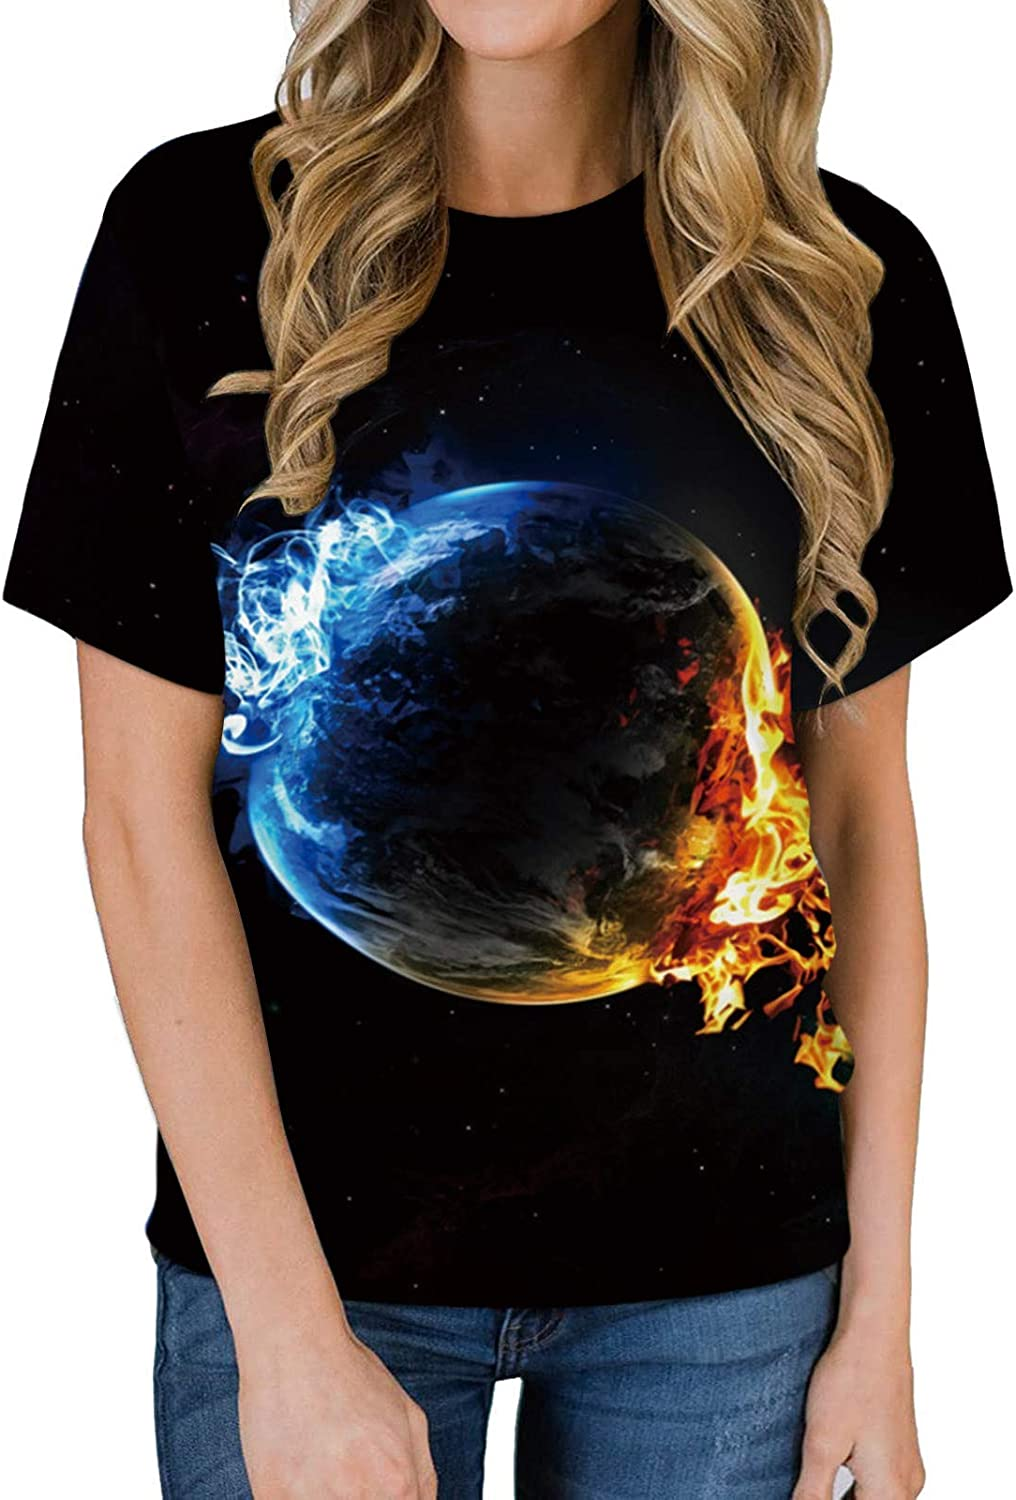 3D Graphic Colorful T-Shirts for Men Short Sleeve Crewneck Printed Fire and Ice T-Shirt Funny Summer Shirt Tops